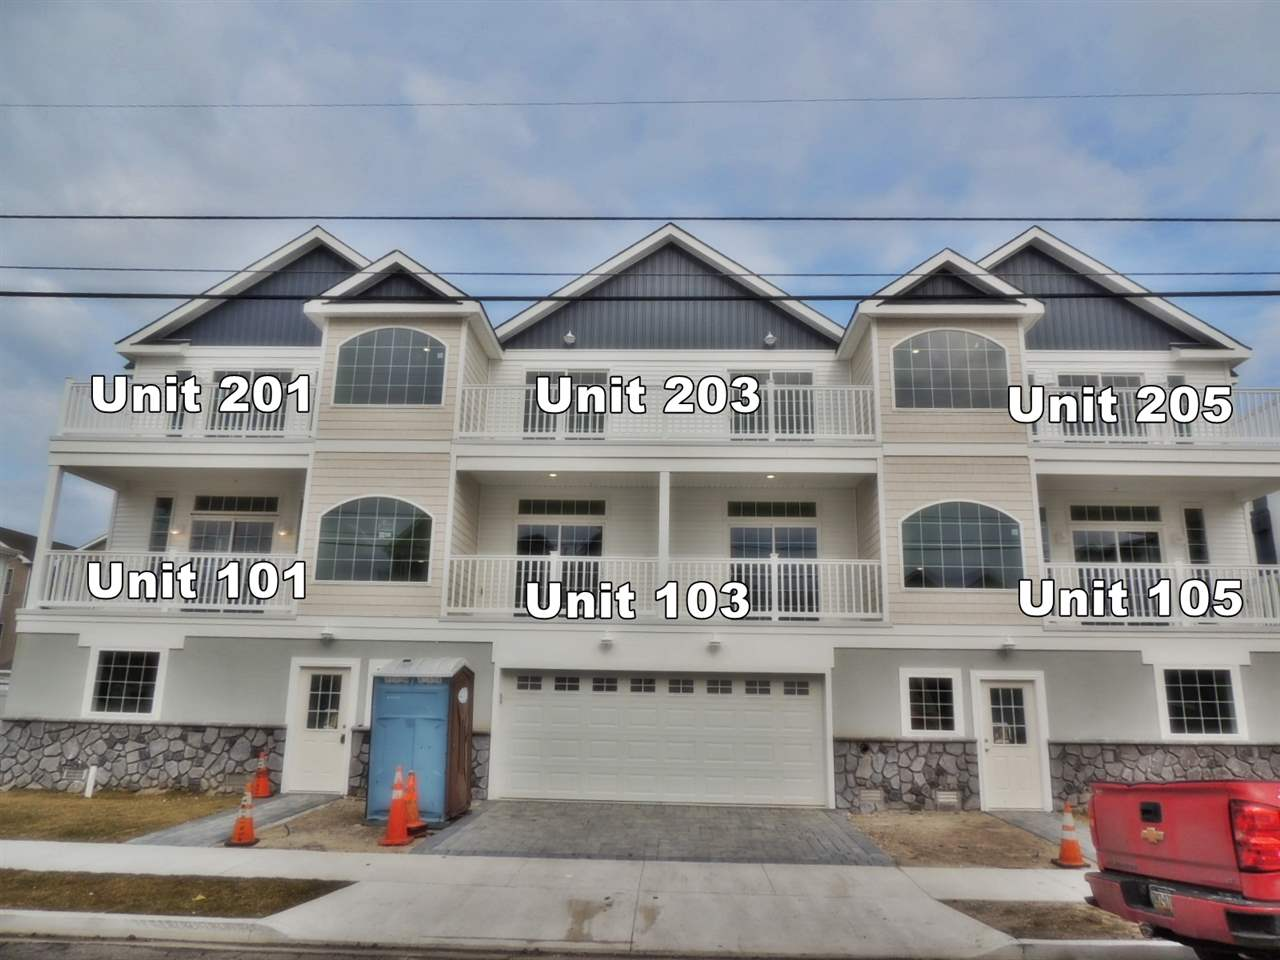 421, Unit 203 23rd Avenue, North Wildwood